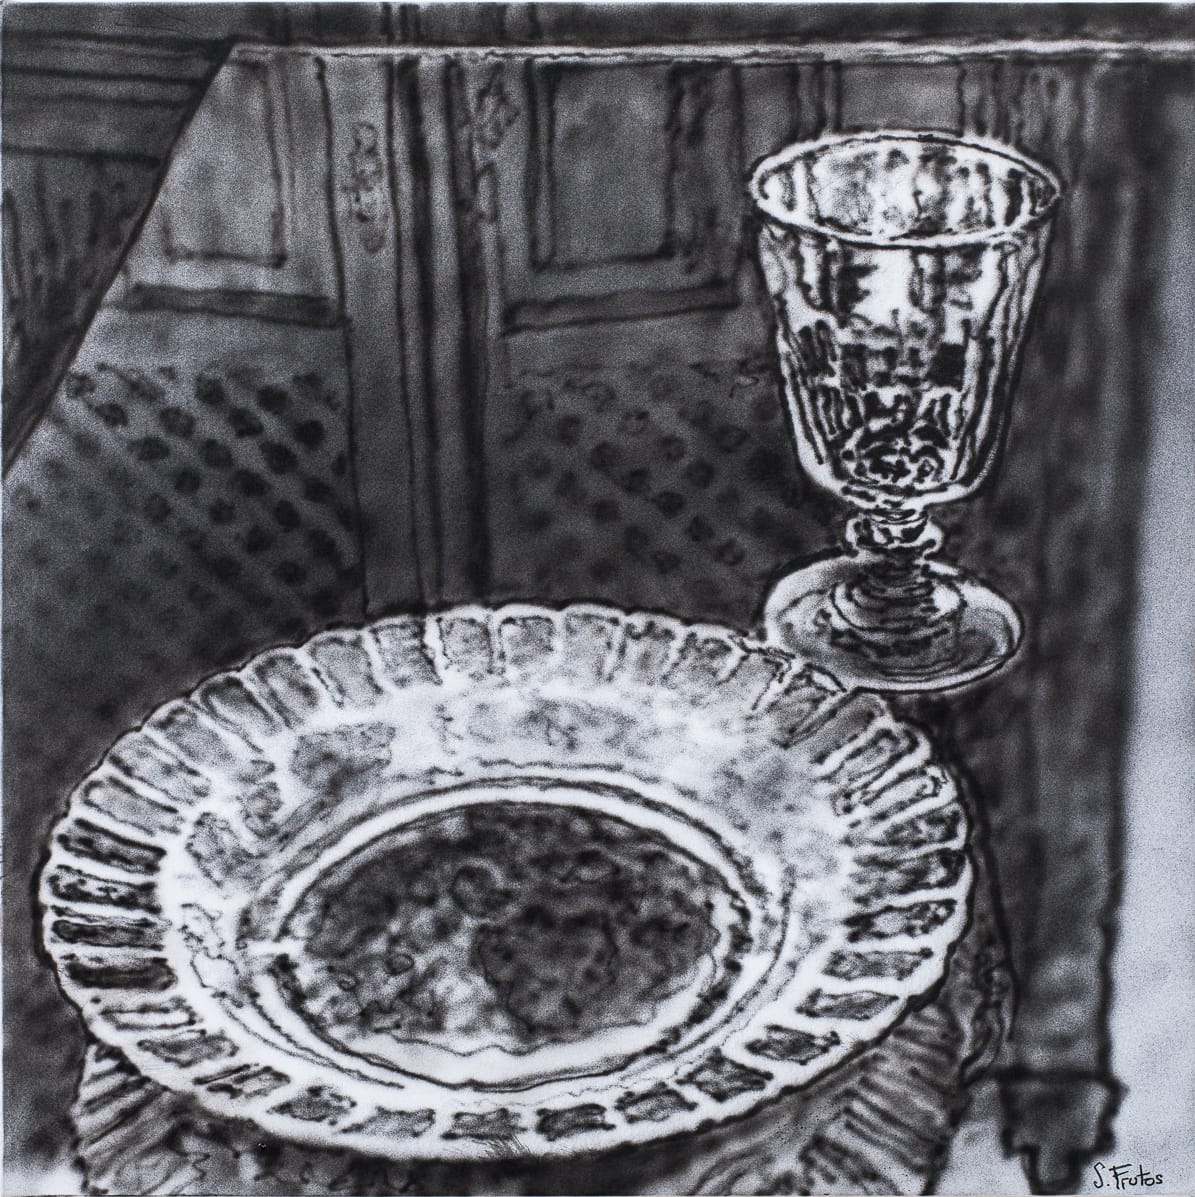 Glass and Dish, Villarrubia. Ink on paper, 30 x 30 cm, 2018